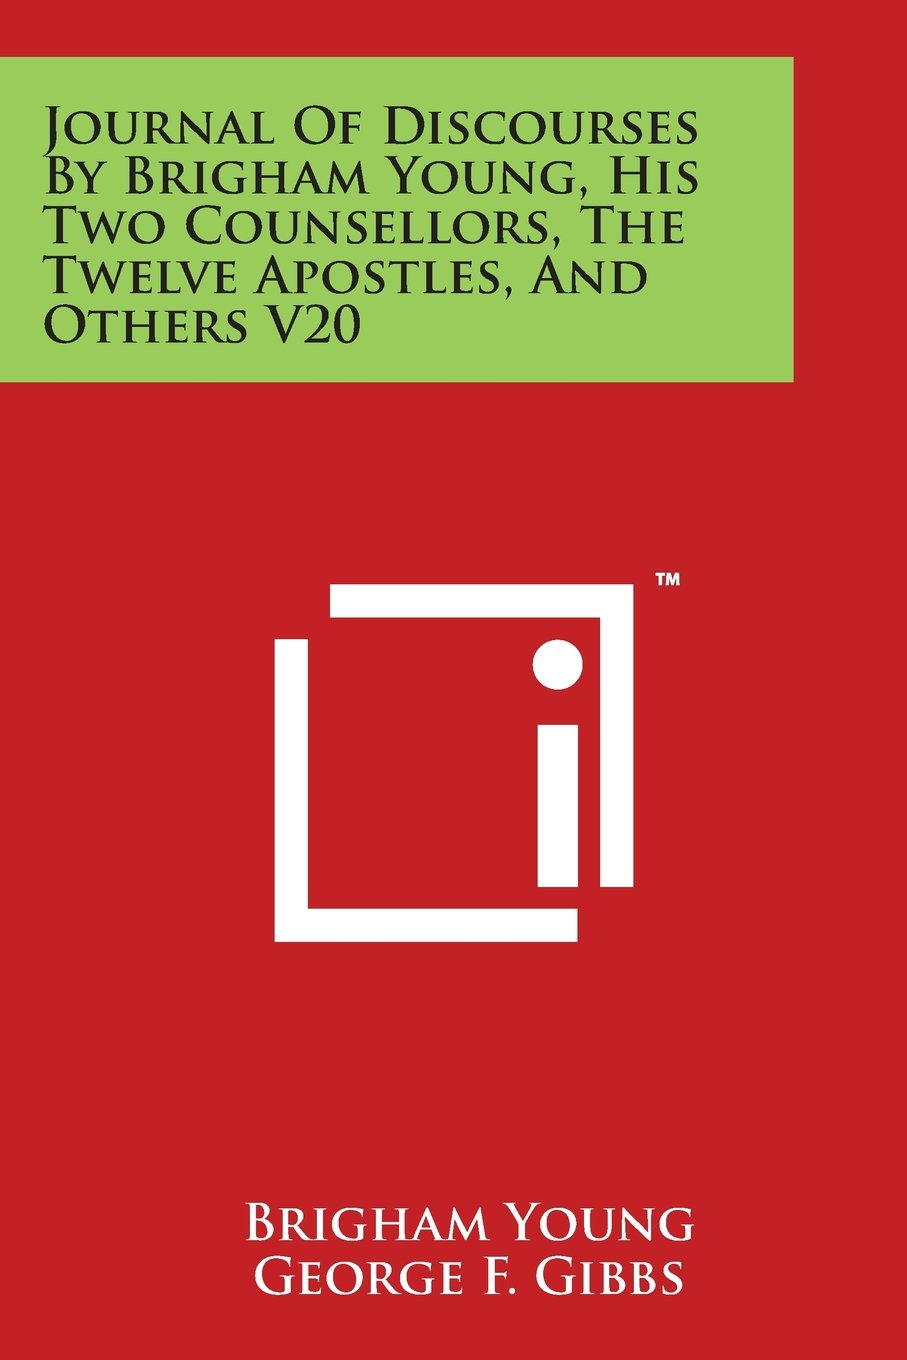 Journal Of Discourses By Brigham Young, His Two Counsellors, The Twelve Apostles, And Others V20 pdf epub